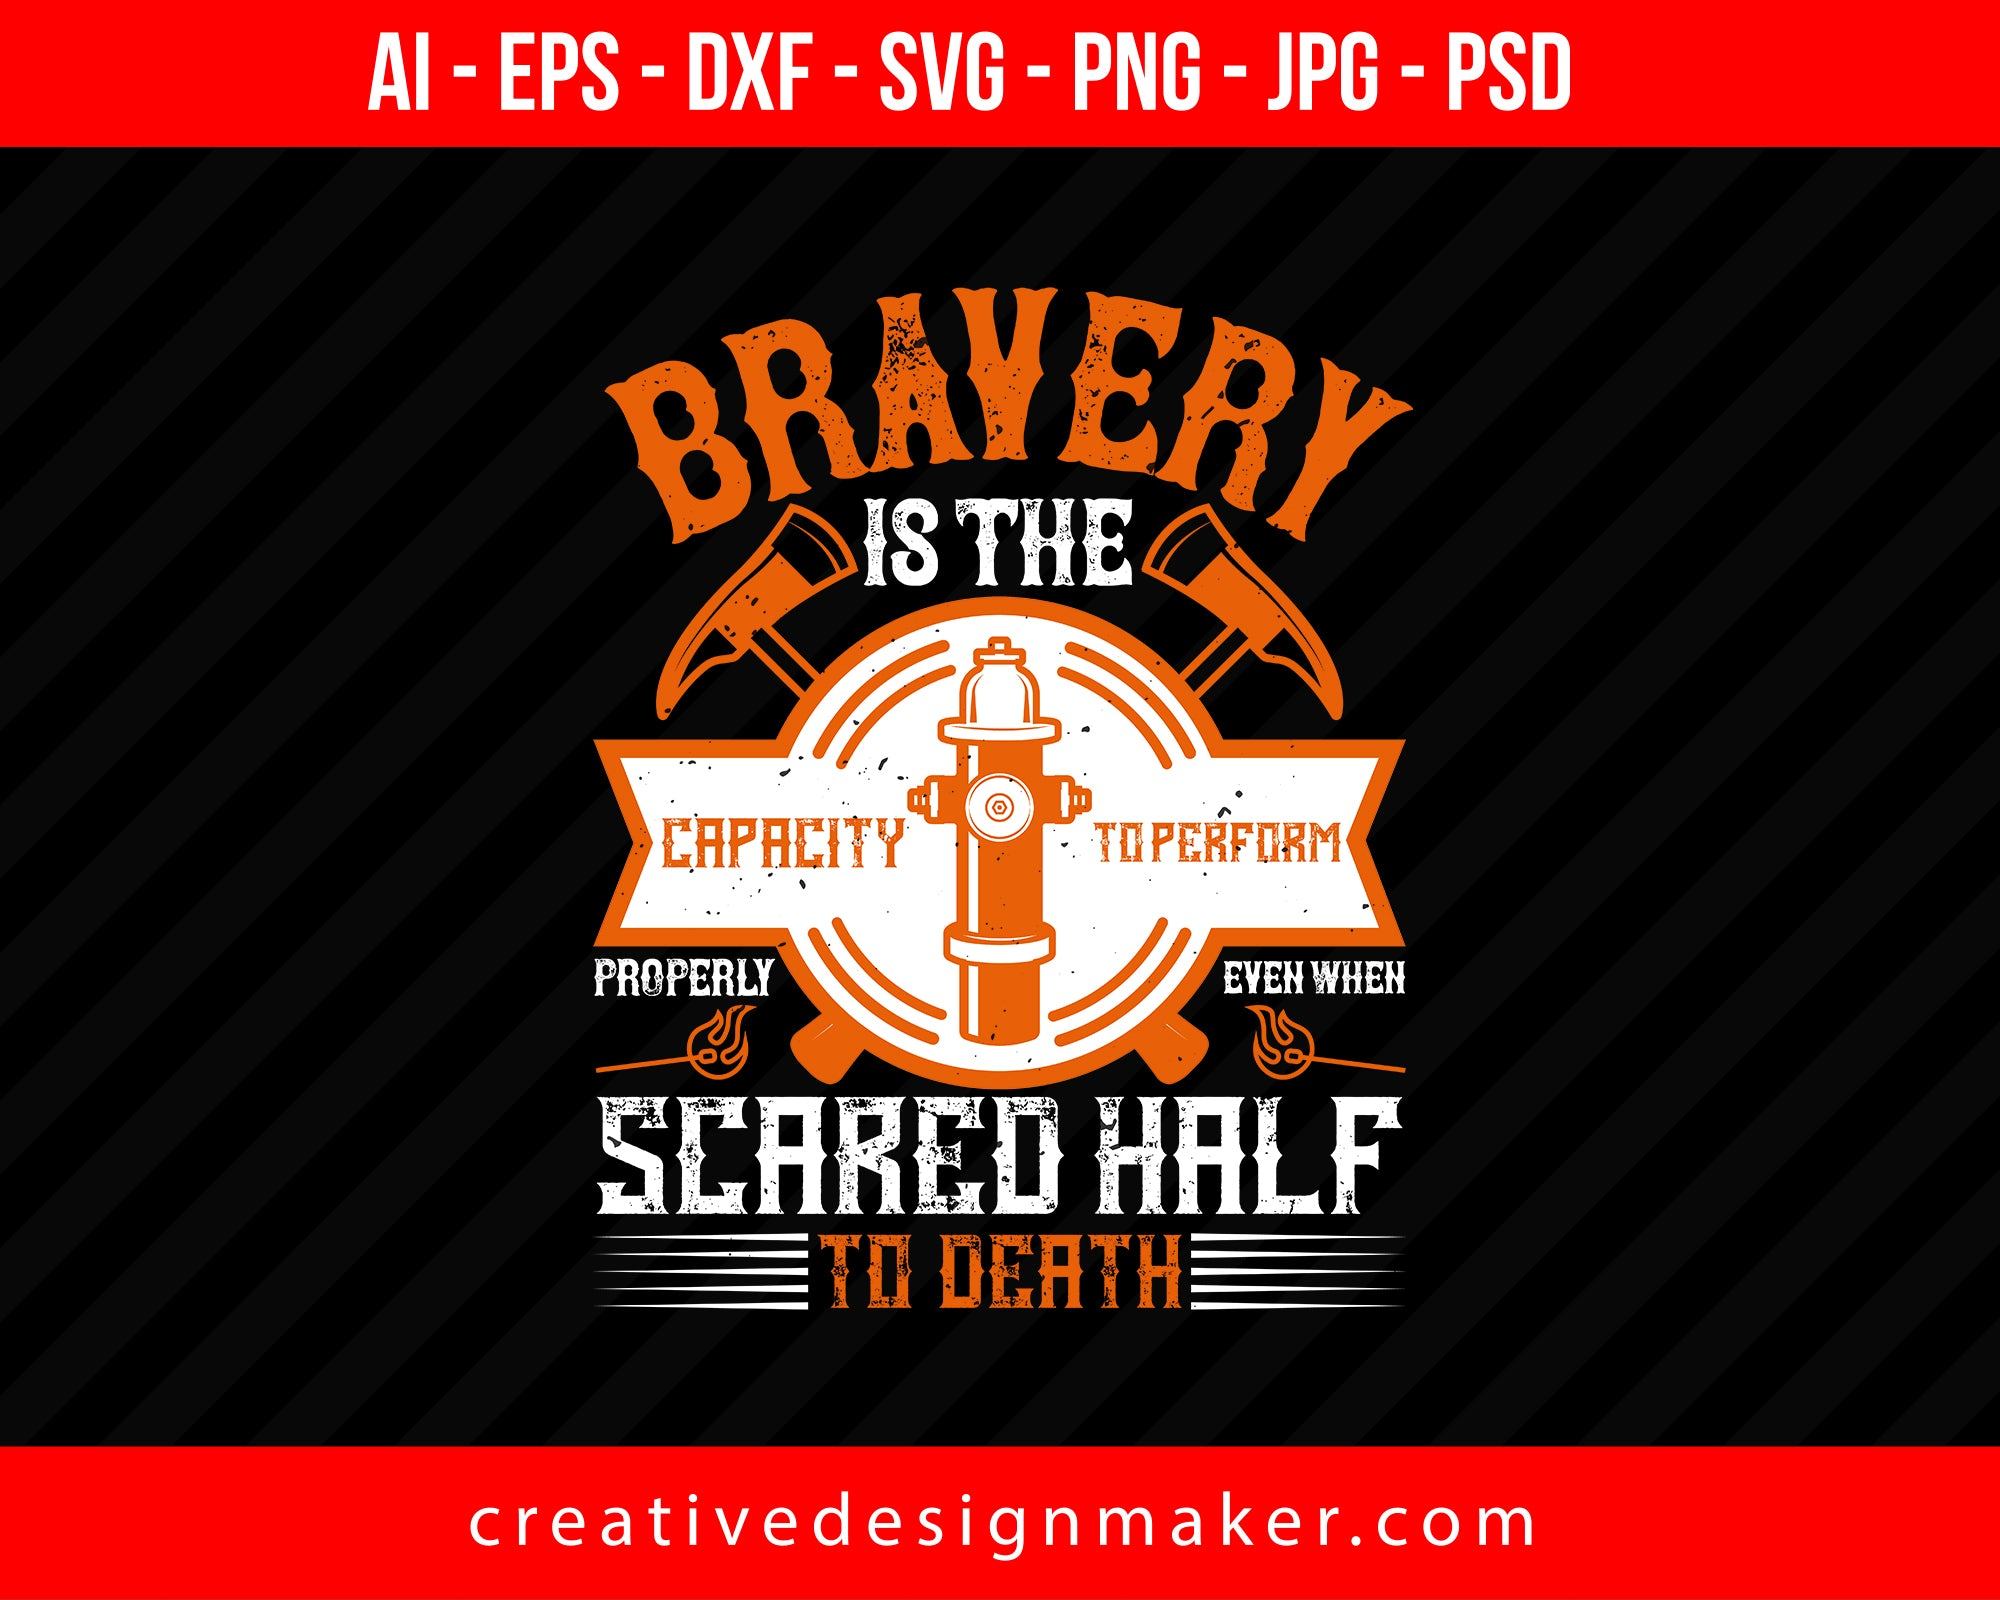 Bravery Is The Capacity To Perform Properly Even When Scared Half To Death Firefighter Print Ready Editable T-Shirt SVG Design!